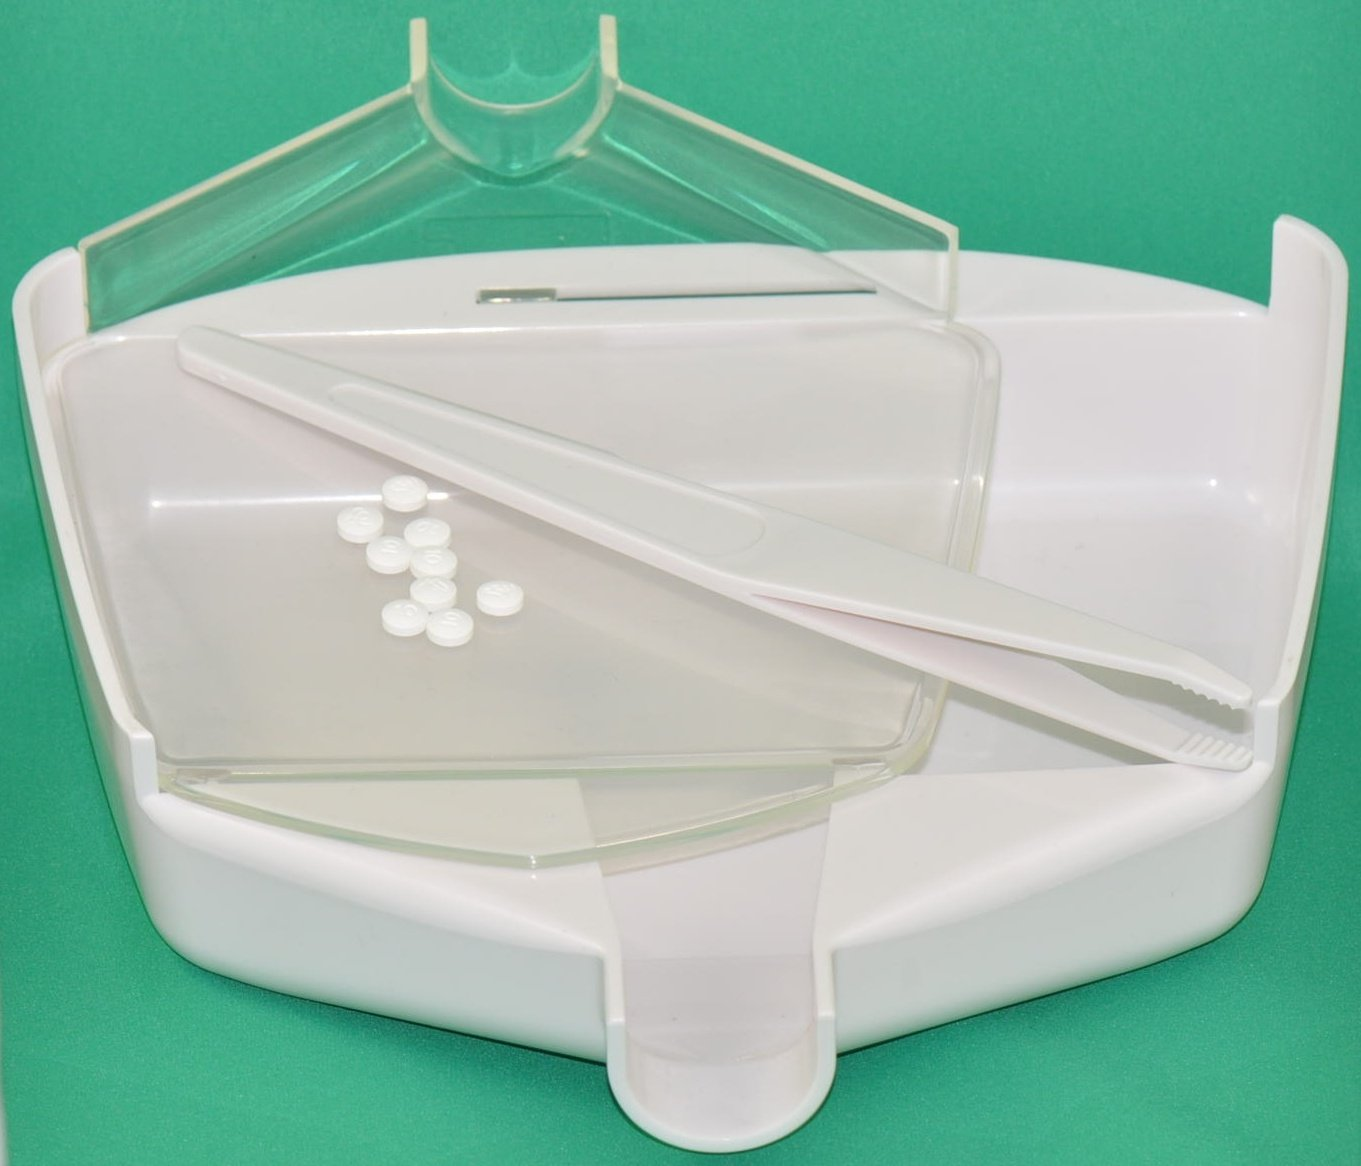 Duocount Professional Patented Pill Counting Tray with Tweezer Spatula